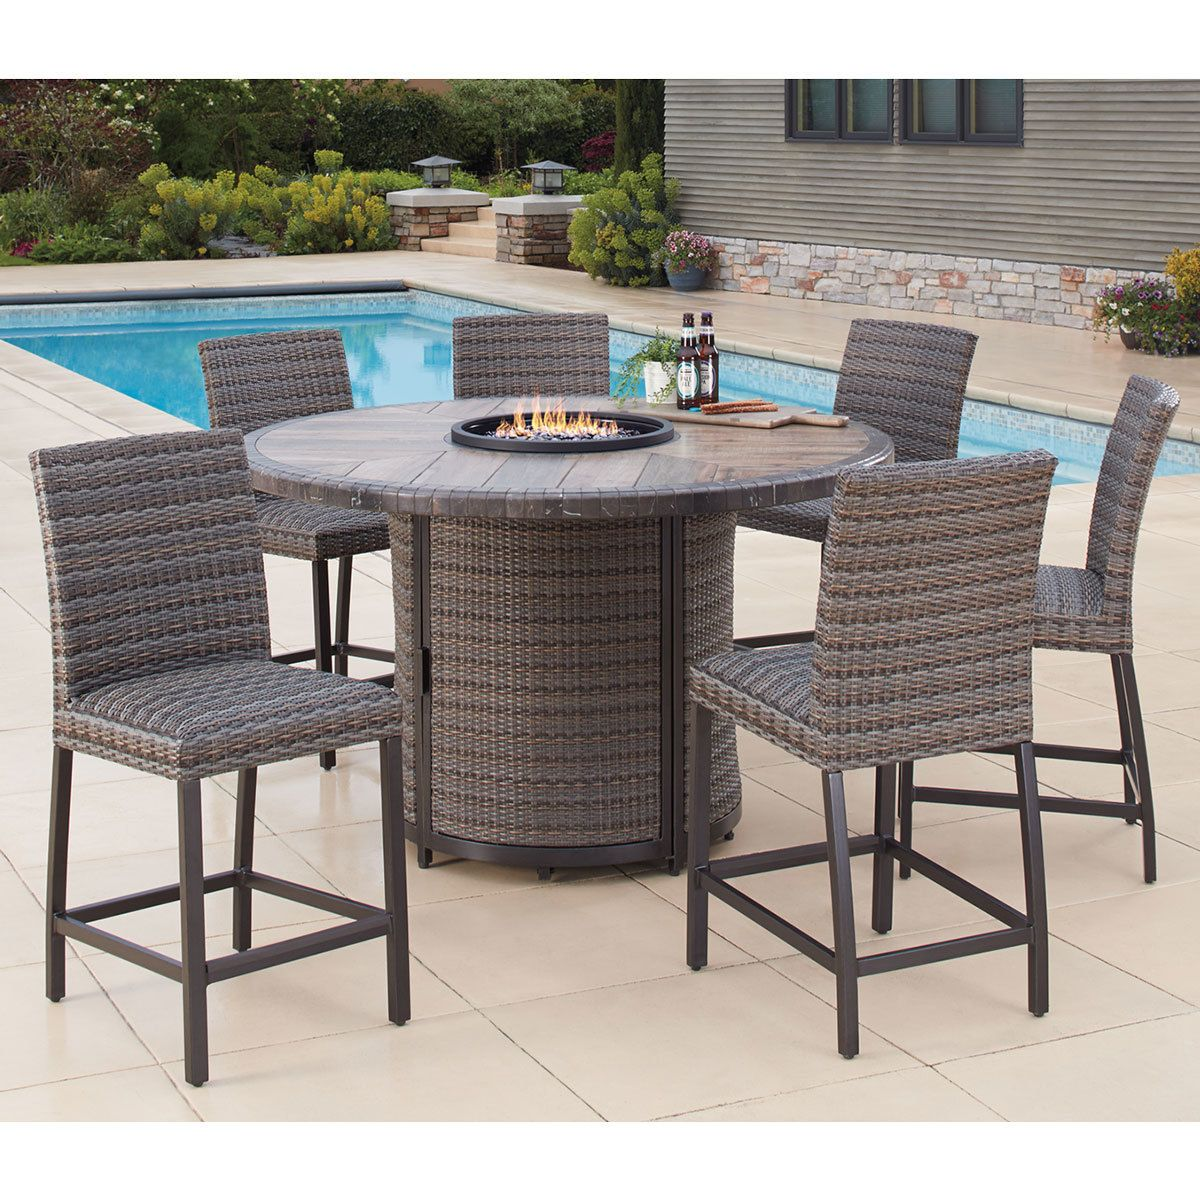 Costco Patio Dining Sets On Sale